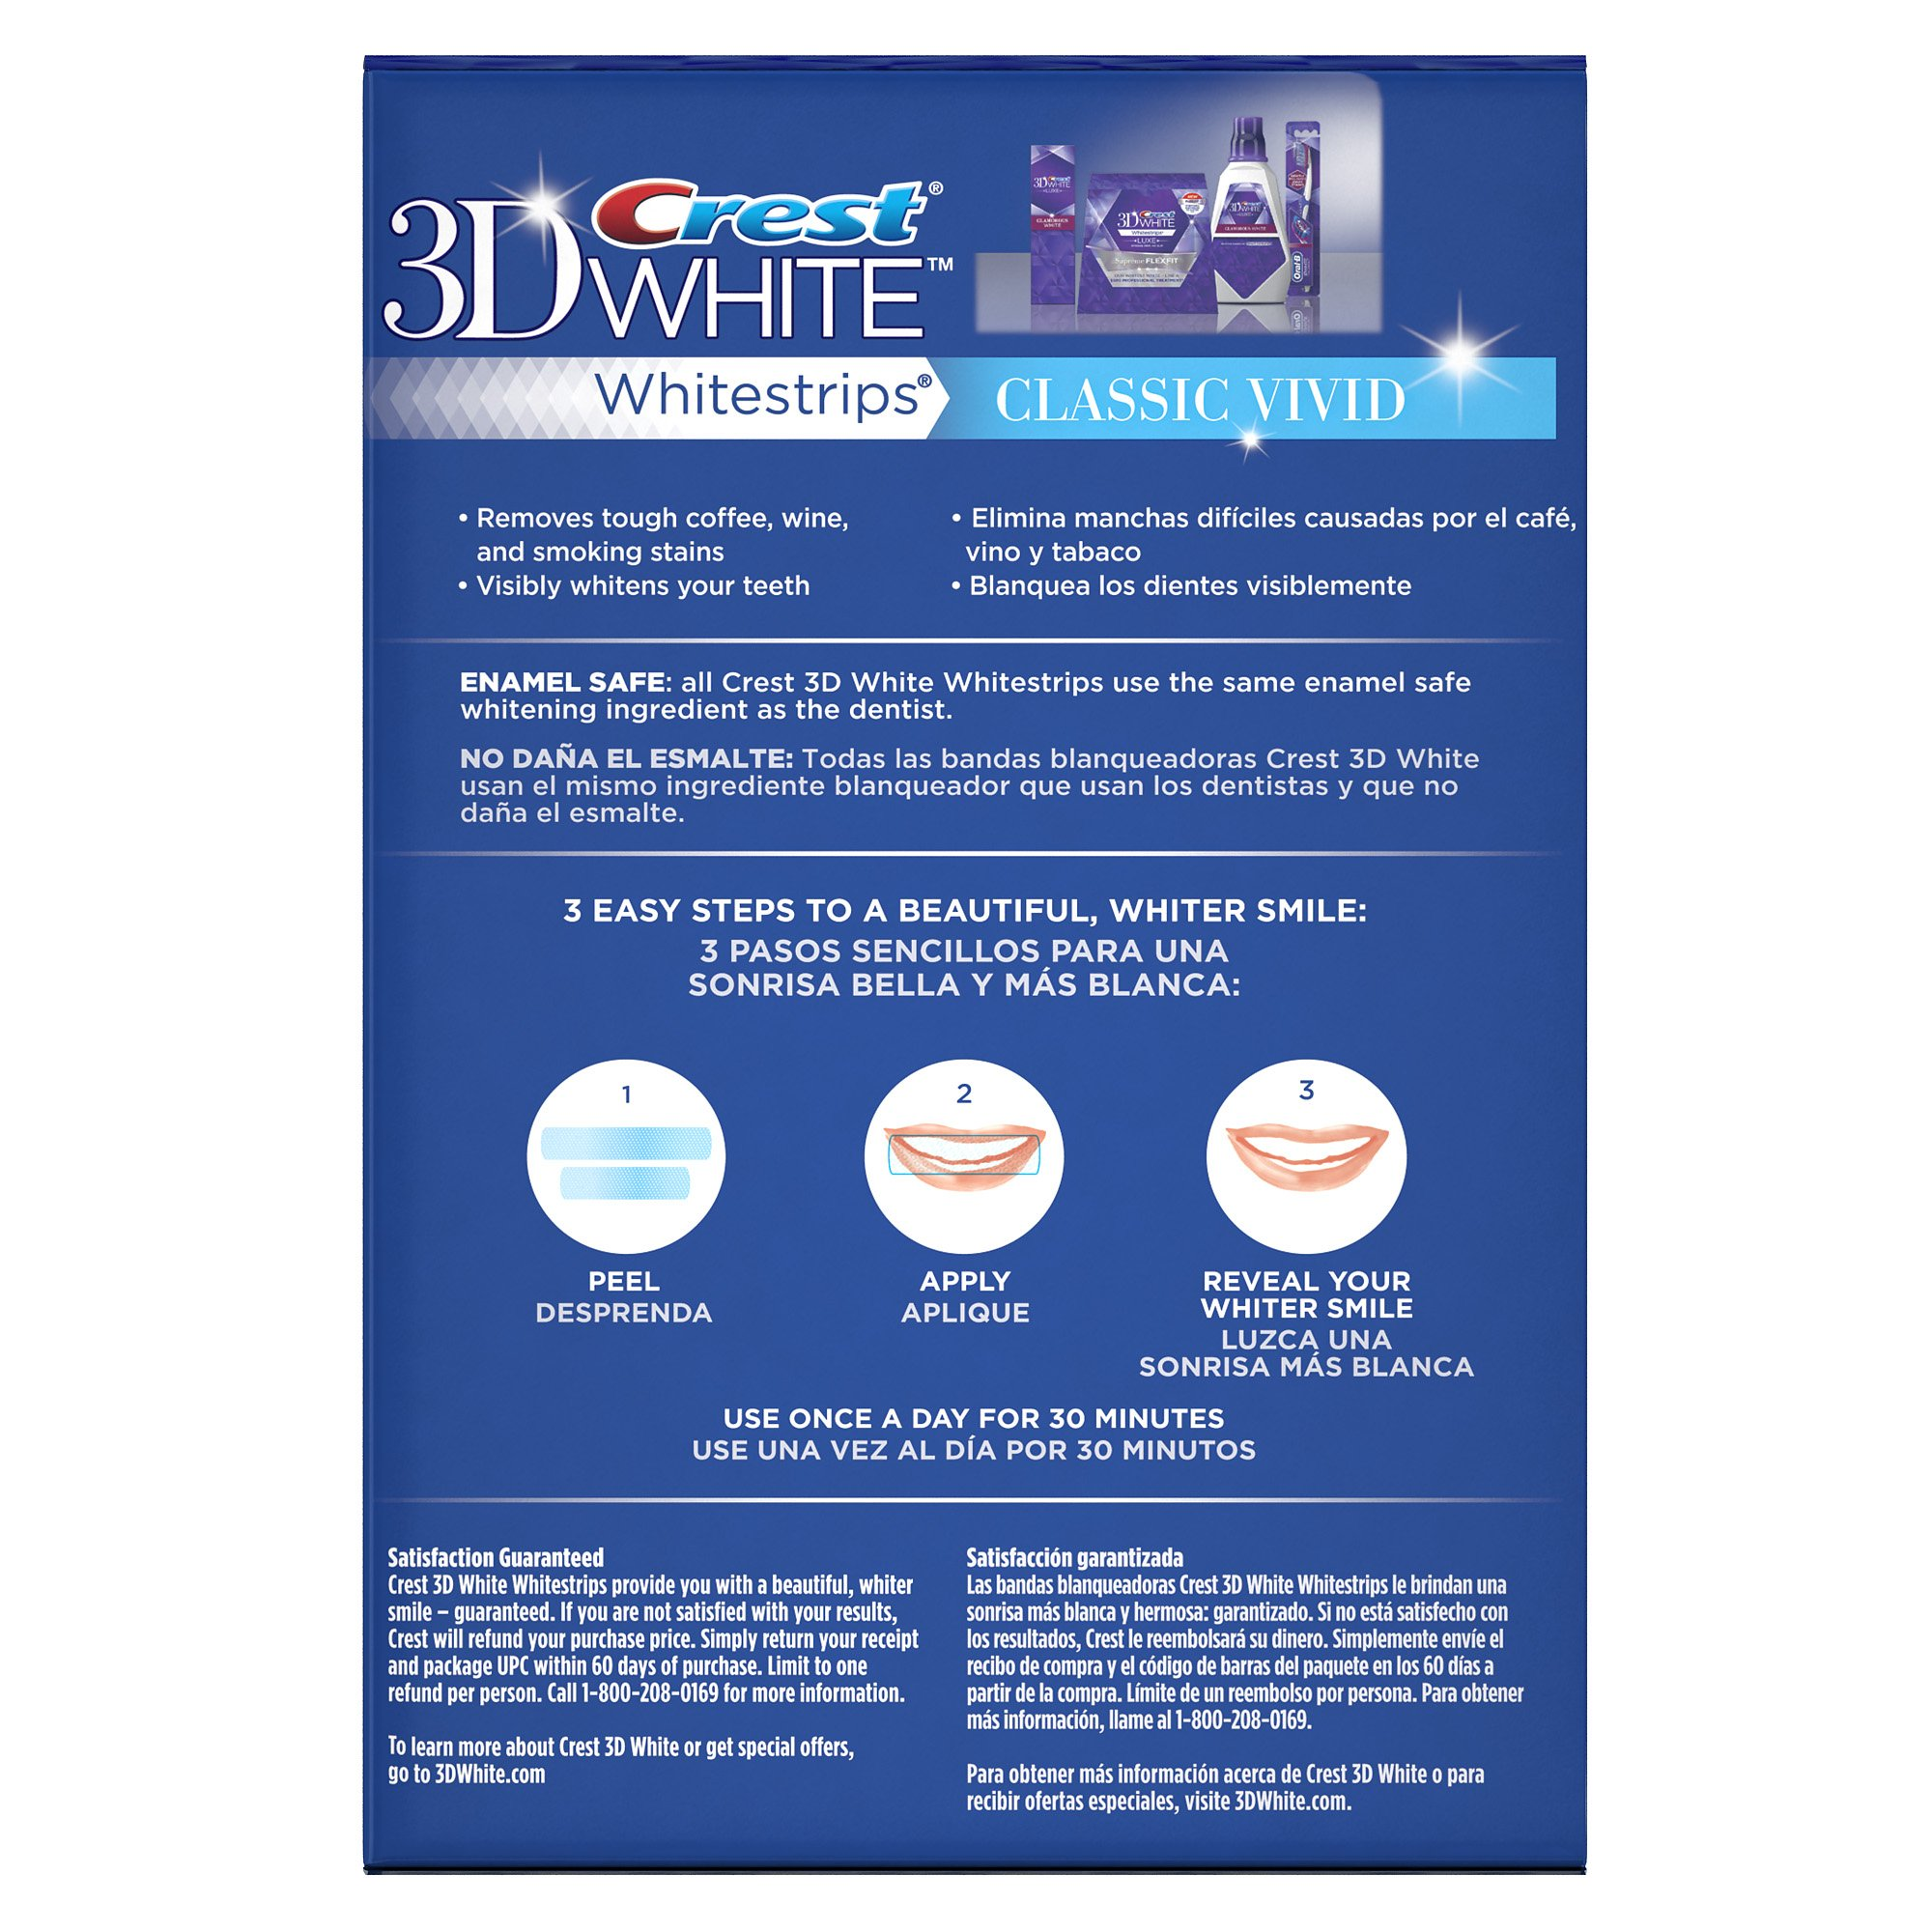 Crest 3D White Whitestrips Classic Vivid Teeth Whitening Kit, 12 Treatments - 24 Strips by Crest (Image #5)